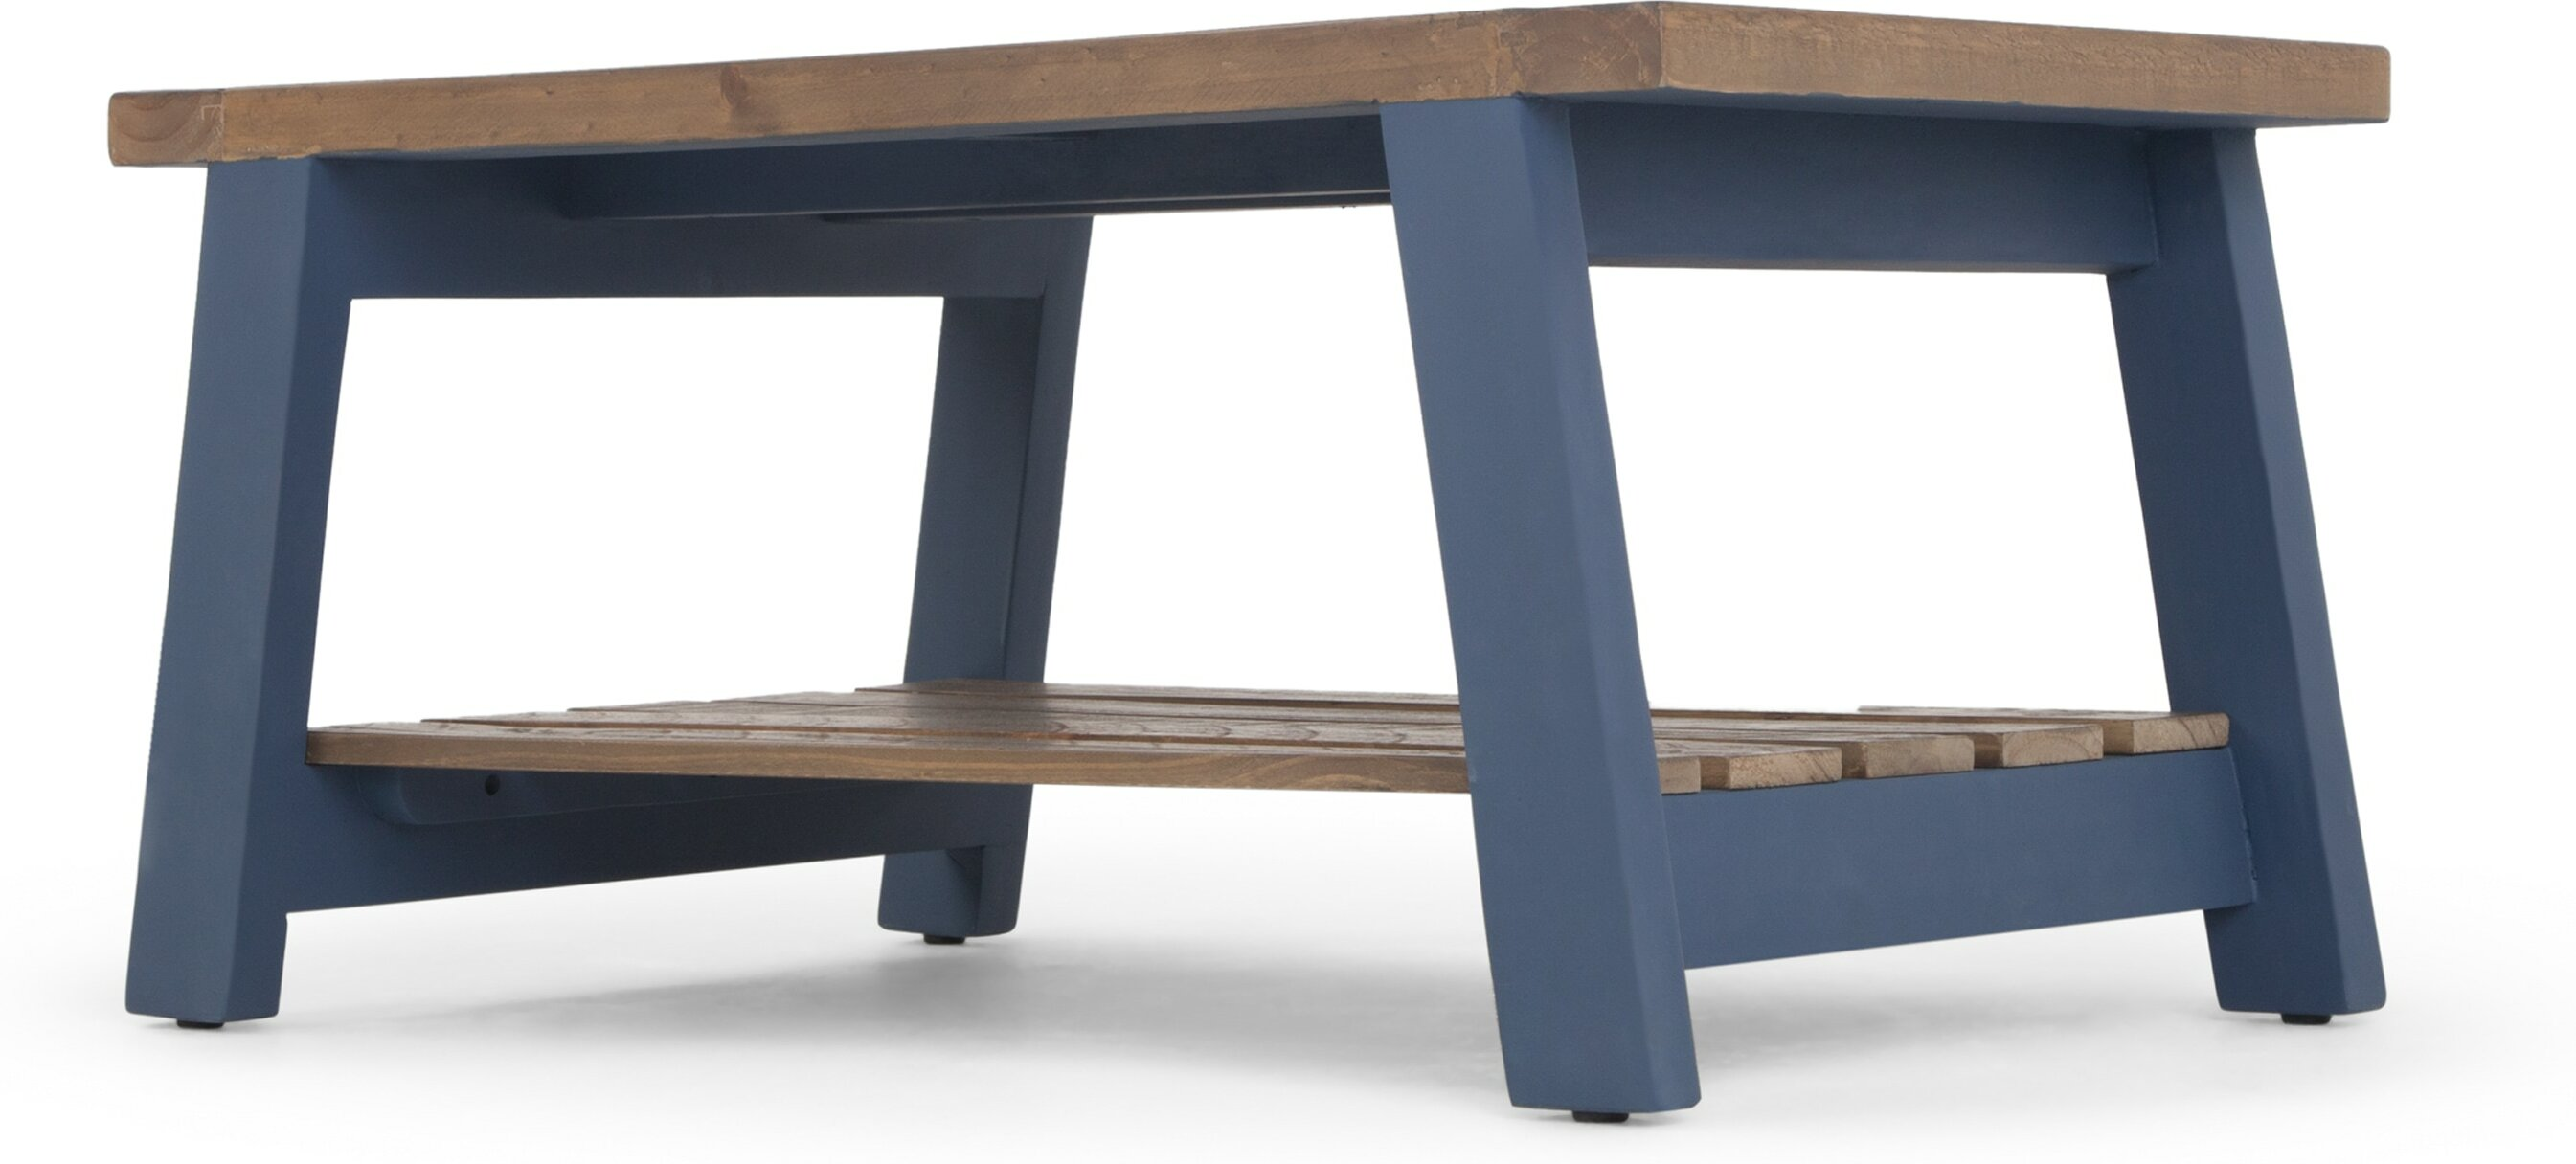 Buy cheap solid wood coffee table compare furniture for Cheap wooden coffee tables